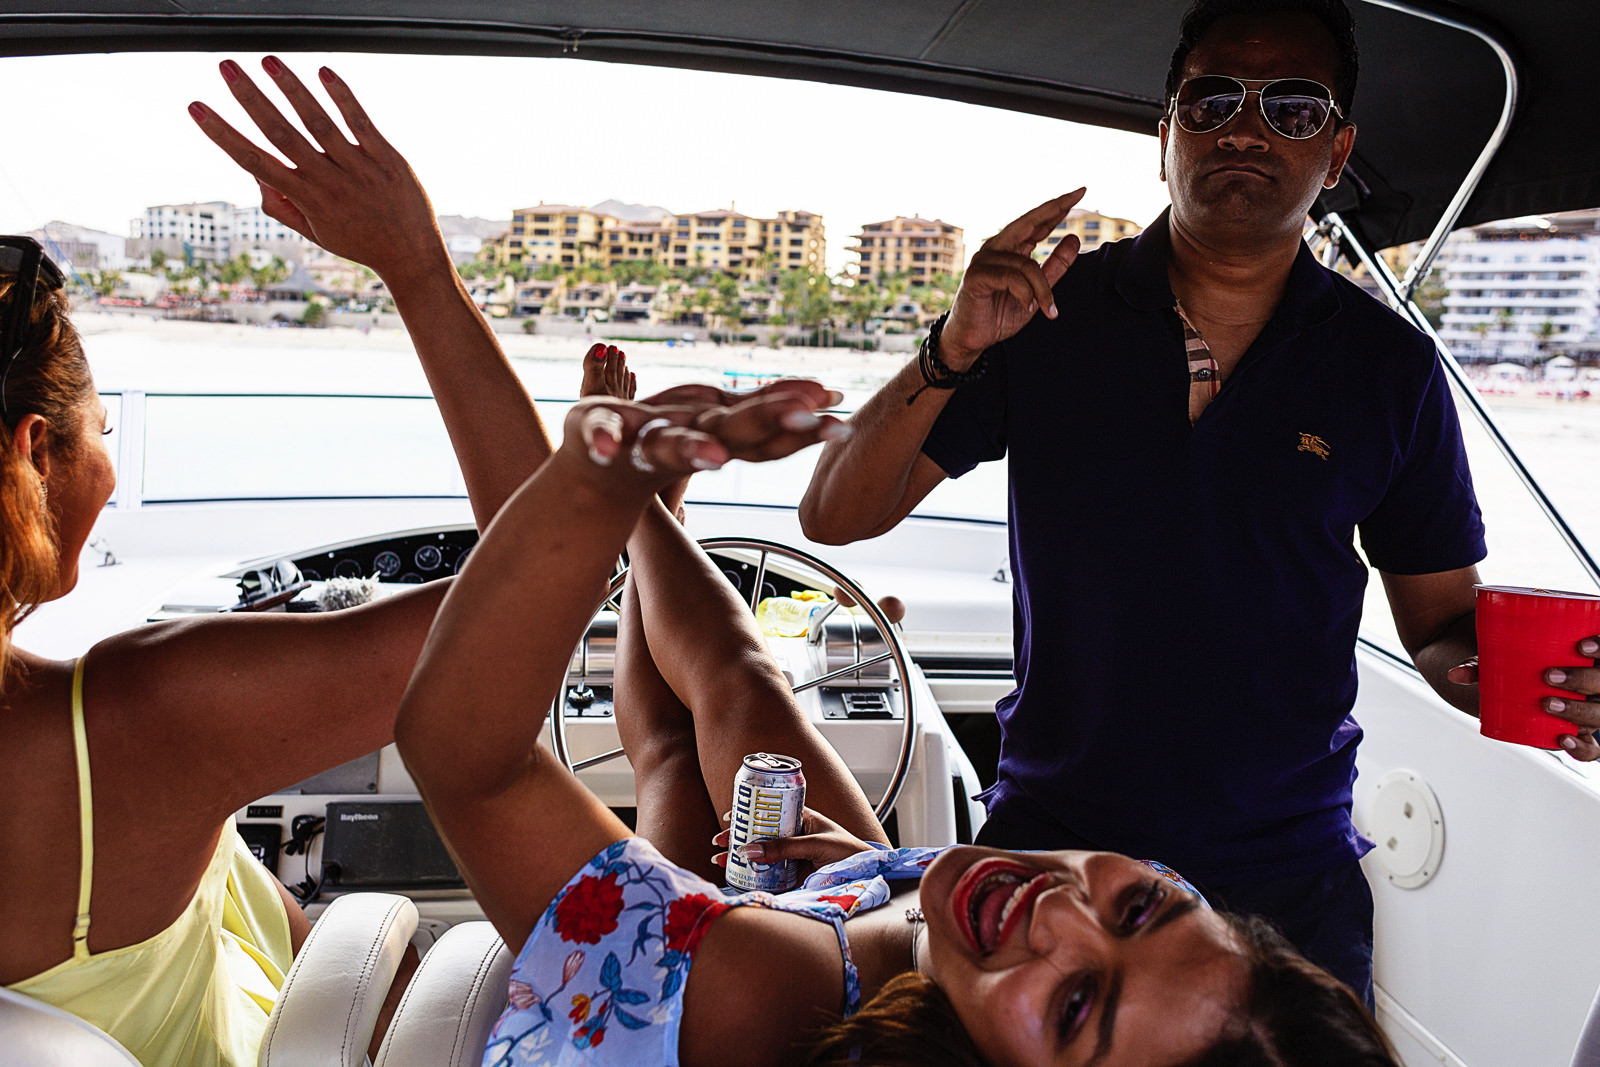 A lady is having fun and steering a yacht with her feet